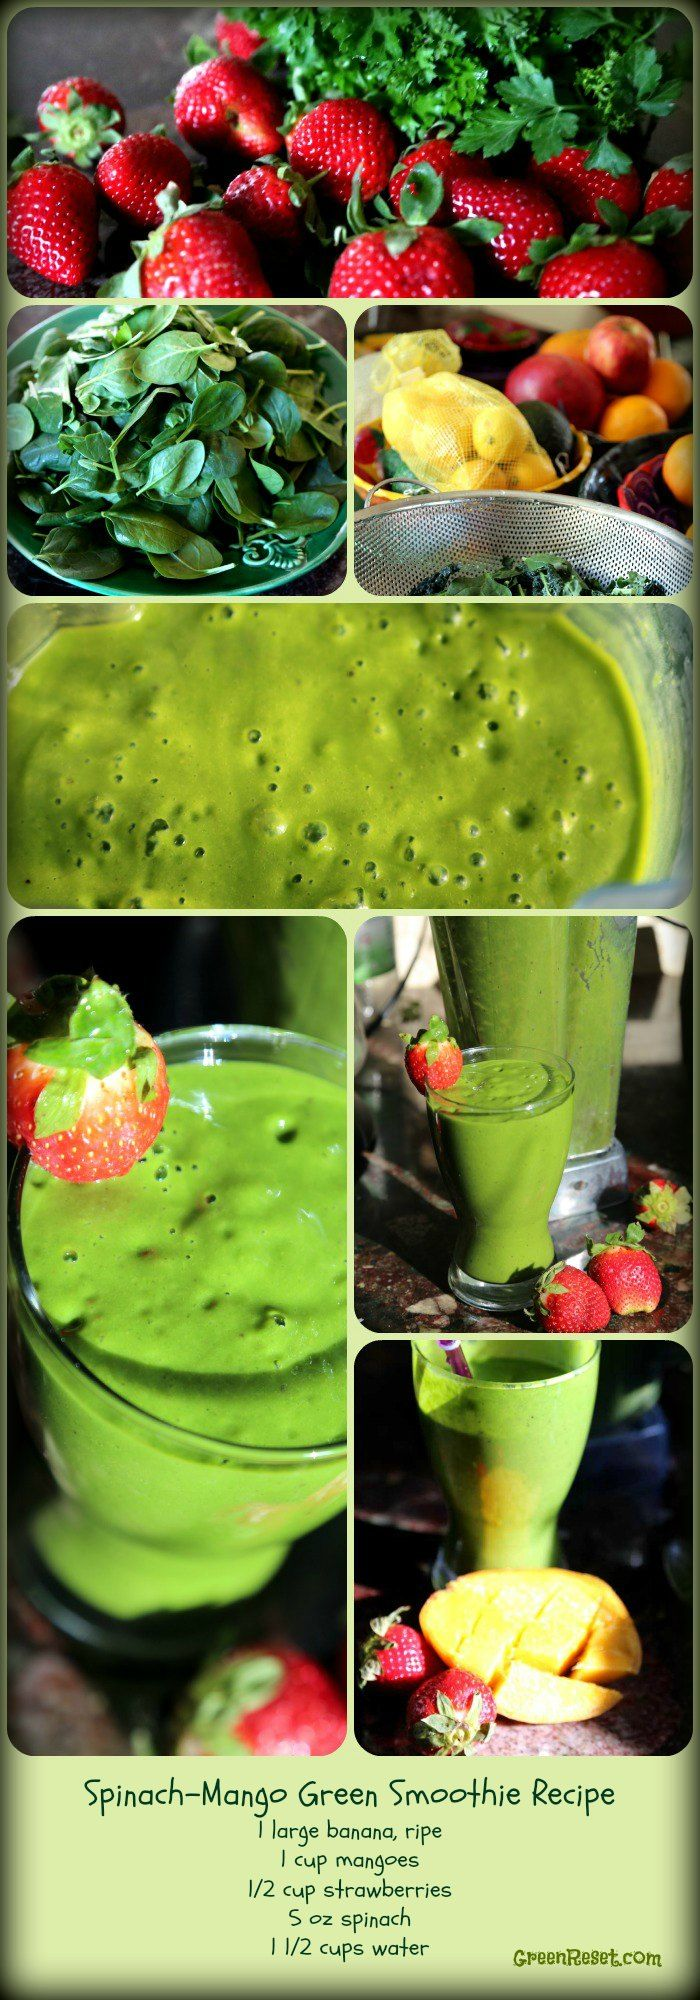 10 Spinach Recipes for Smoothies: How To Make Yummy Spinach Smoothies Your Family ( gotta try for my ameia